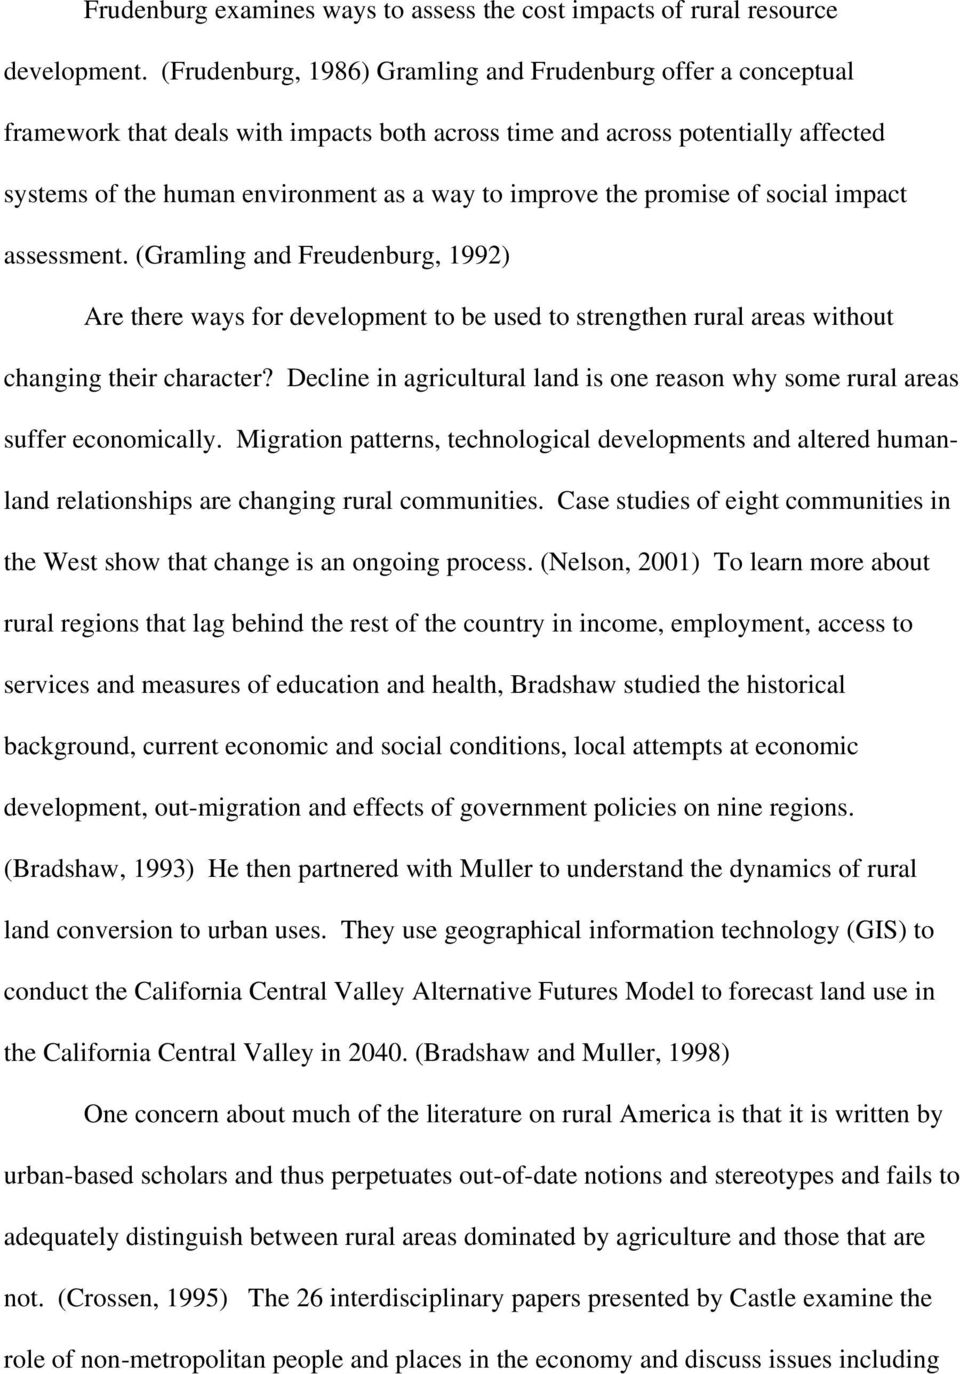 the promise of social impact assessment. (Gramling and Freudenburg, 1992) Are there ways for development to be used to strengthen rural areas without changing their character?